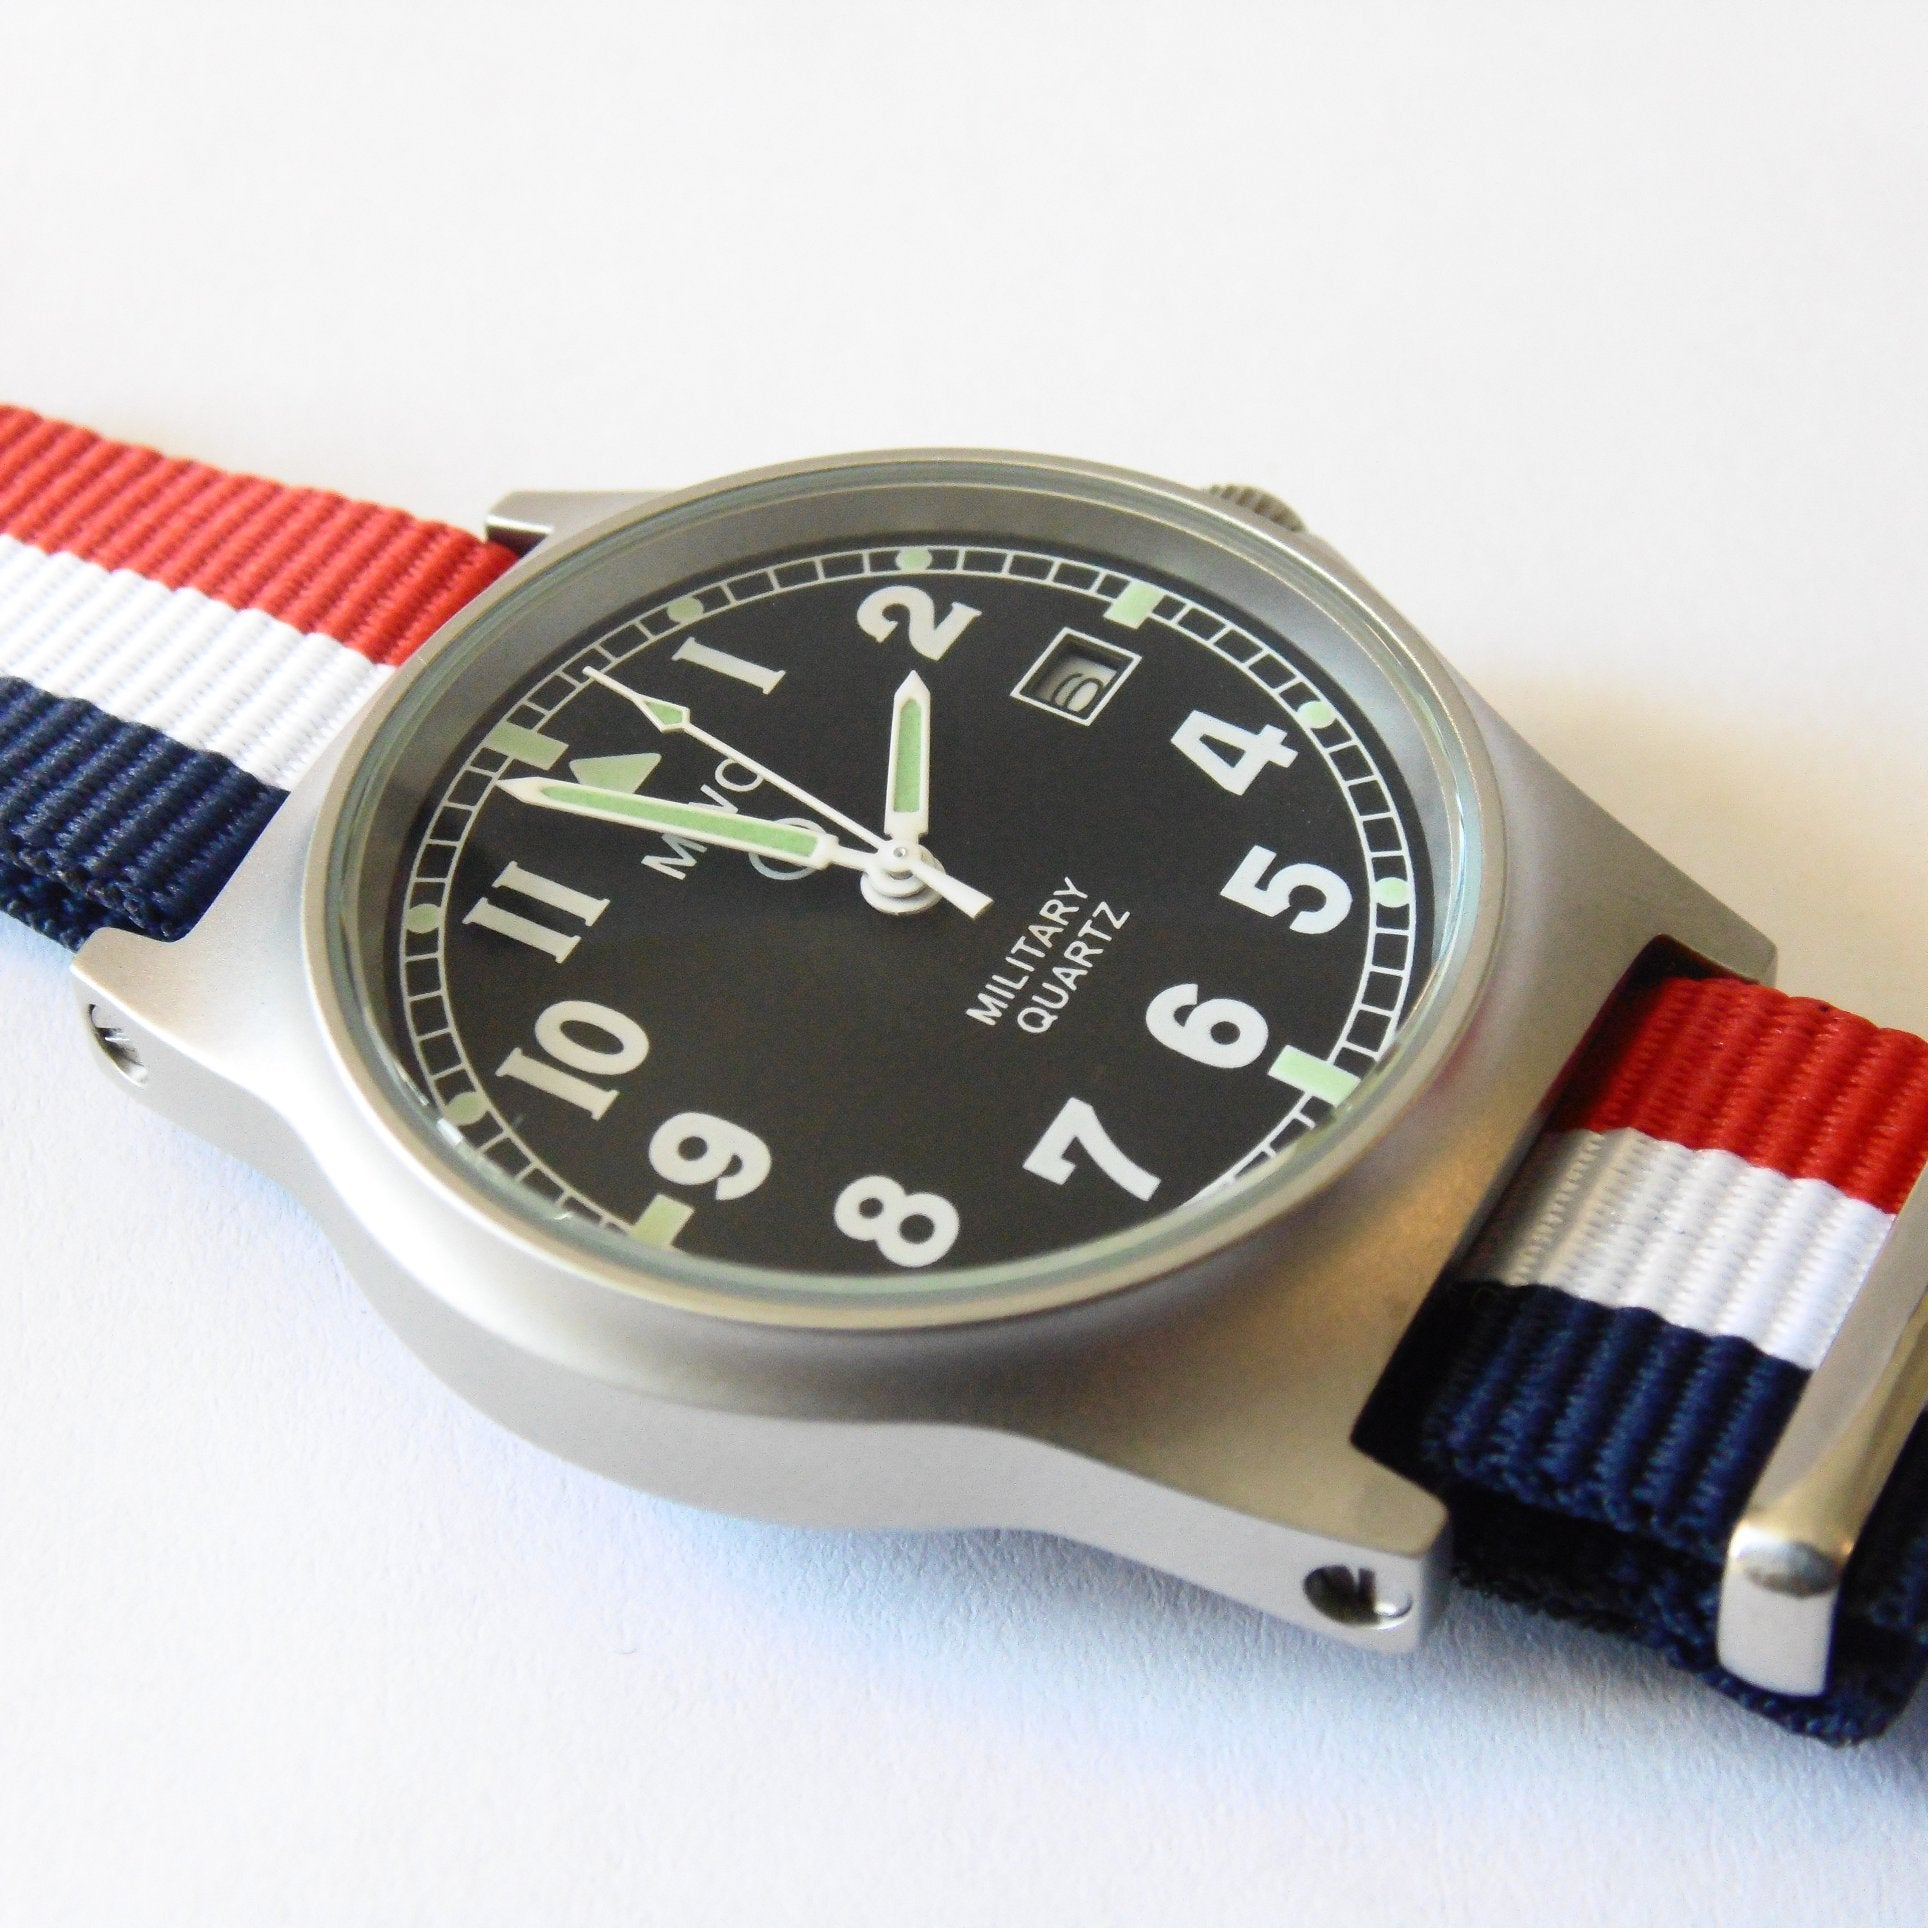 MWC G10 LM Military Watch (French Strap) - Watchfinder General - UK suppliers of Russian Vostok Parnis Watches MWC G10  - 2